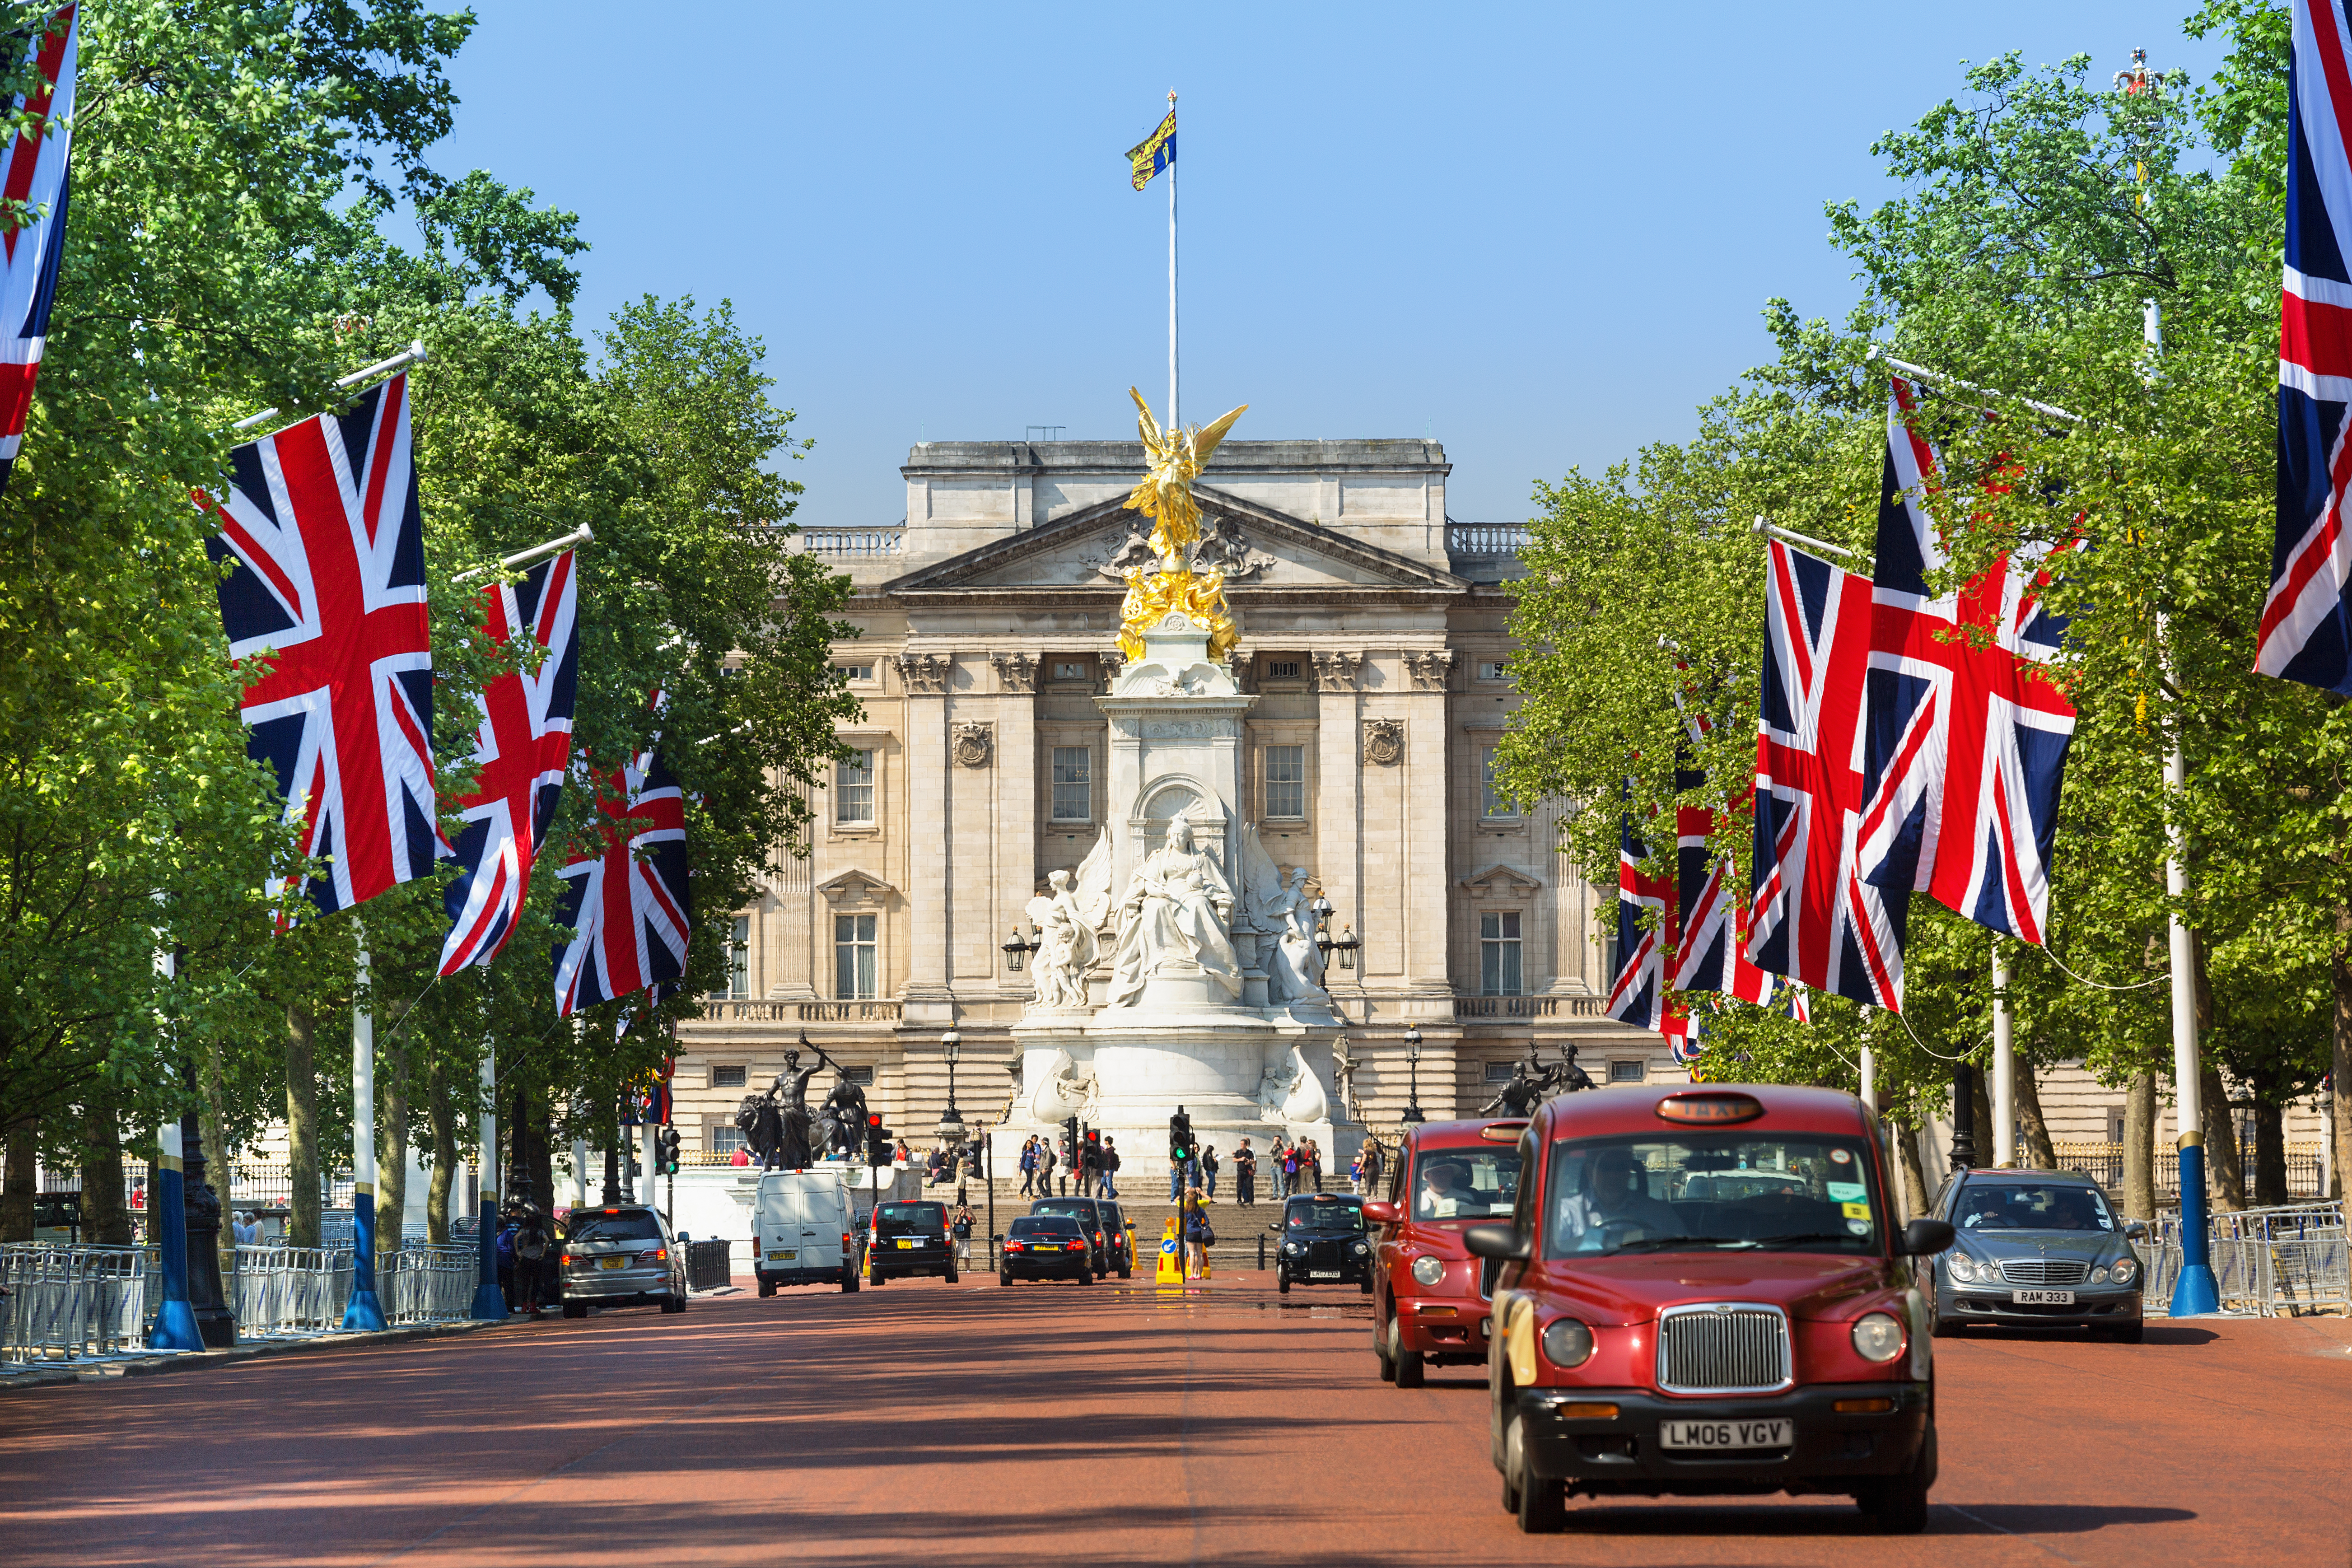 London - England - August 20, 2016: Traffic in London with Buckingham Palace in background